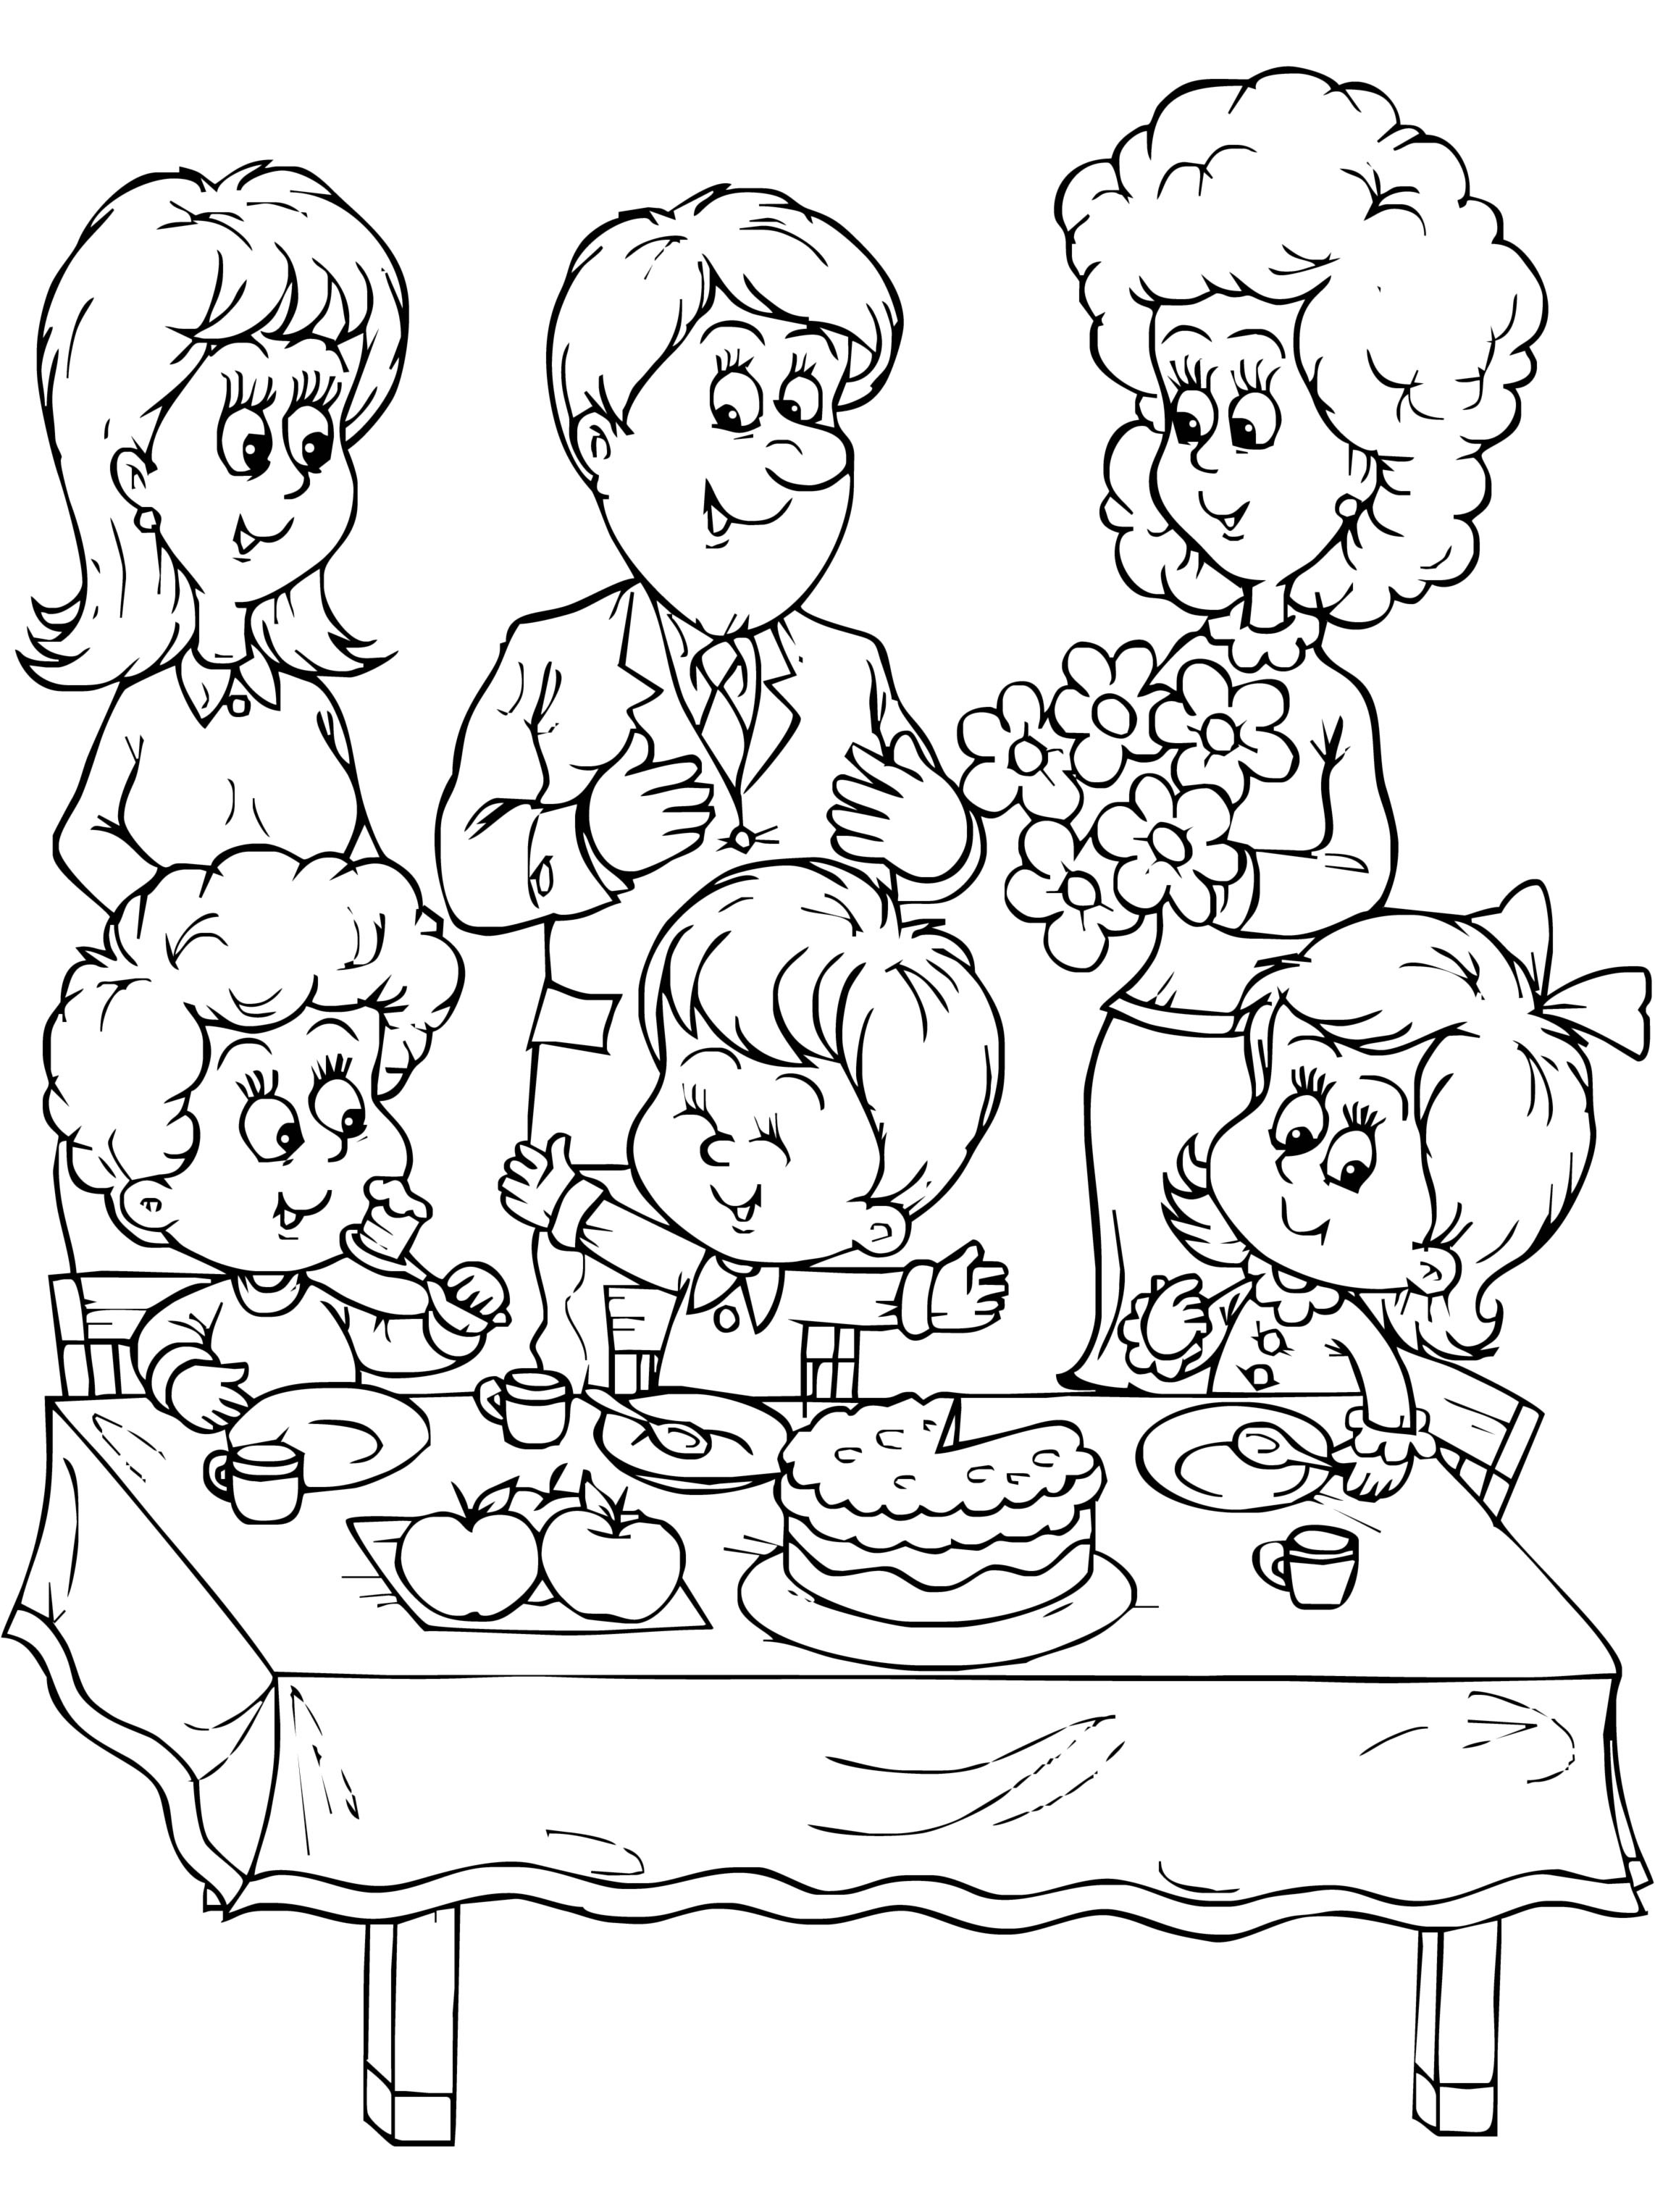 Word Family Coloring Pages At Getdrawings